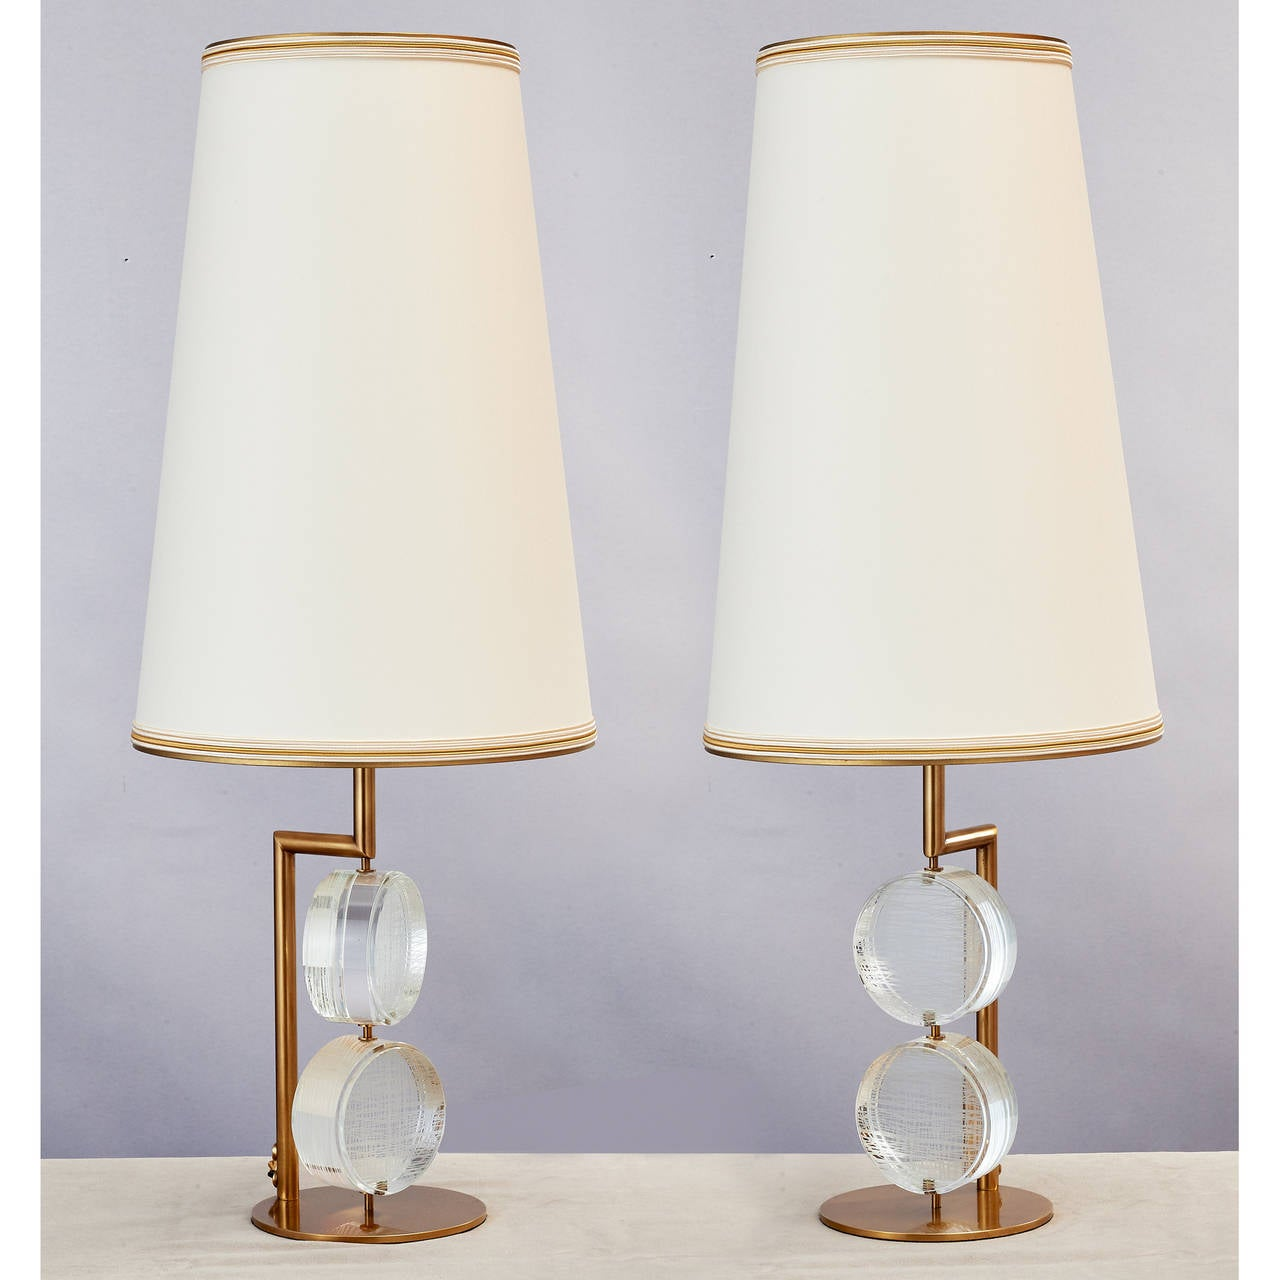 Mid-Century Modern Limited Edition Pair of Etched Glass Lamps by Roberto Rida For Sale